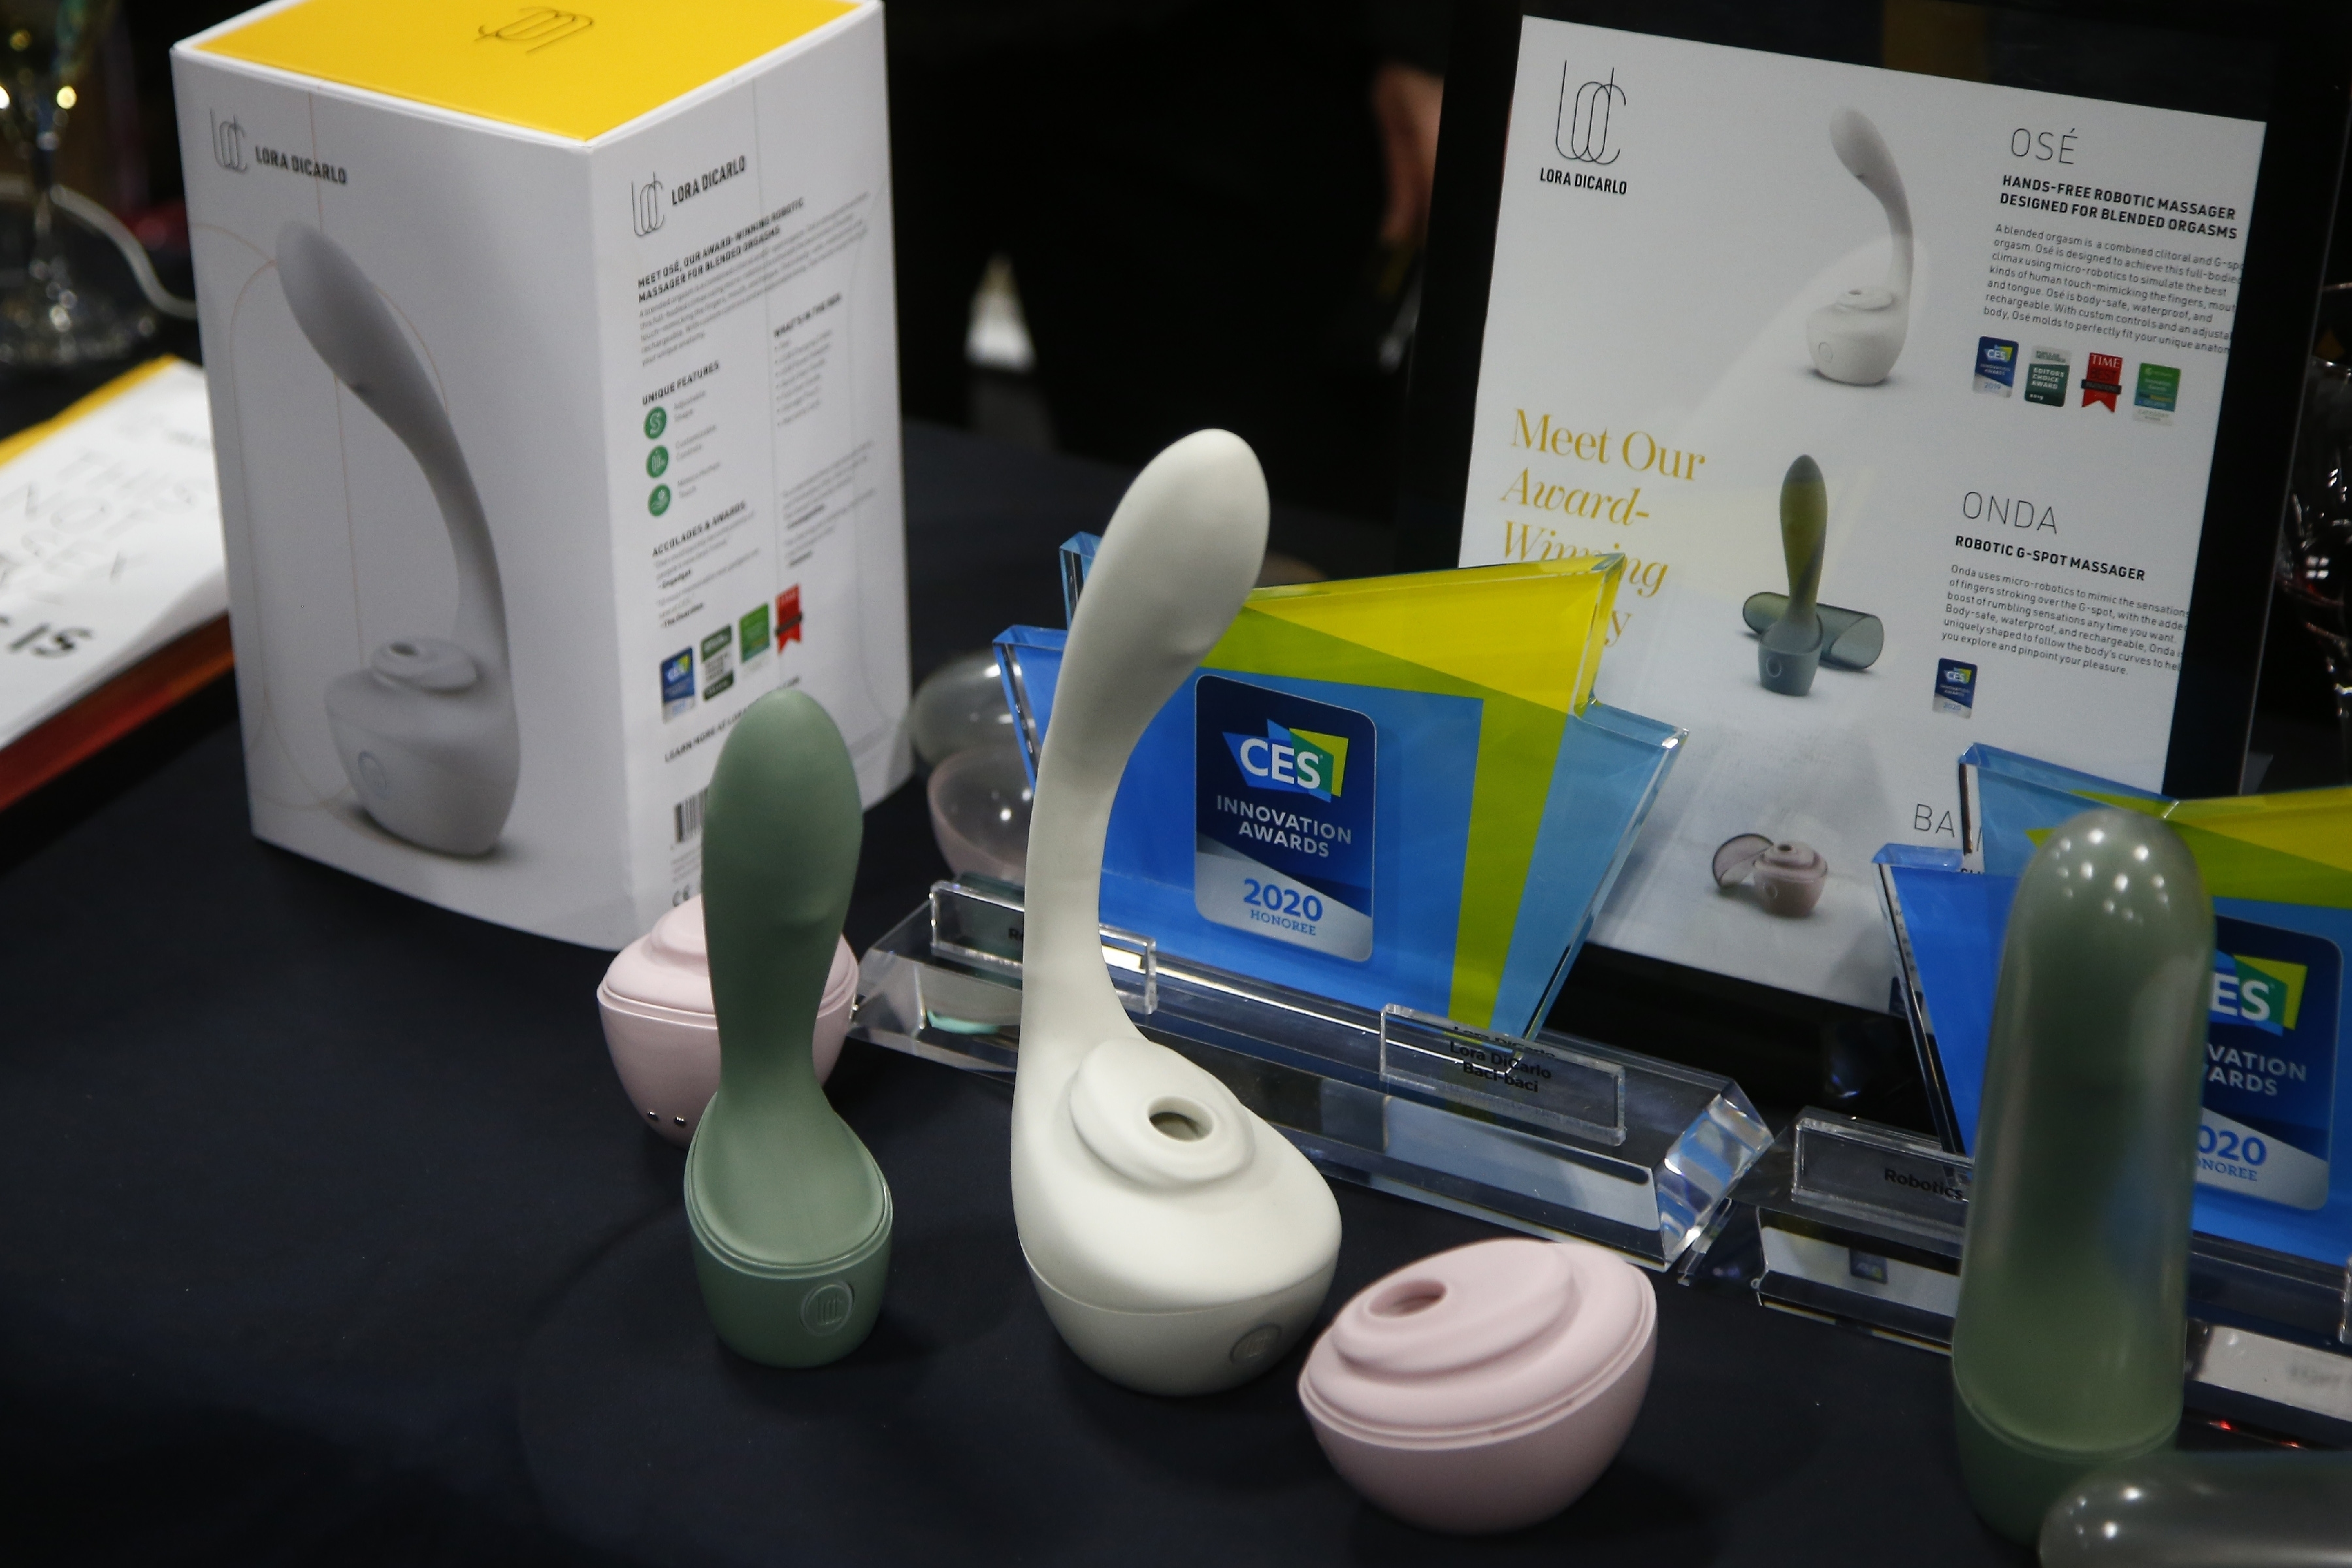 Lora DiCarlo offers a complete line of robotic sexual stimulation devices for women shown here at the CES Unveiled media preview event, Sunday, Jan. 5, 2020, in Las Vegas.